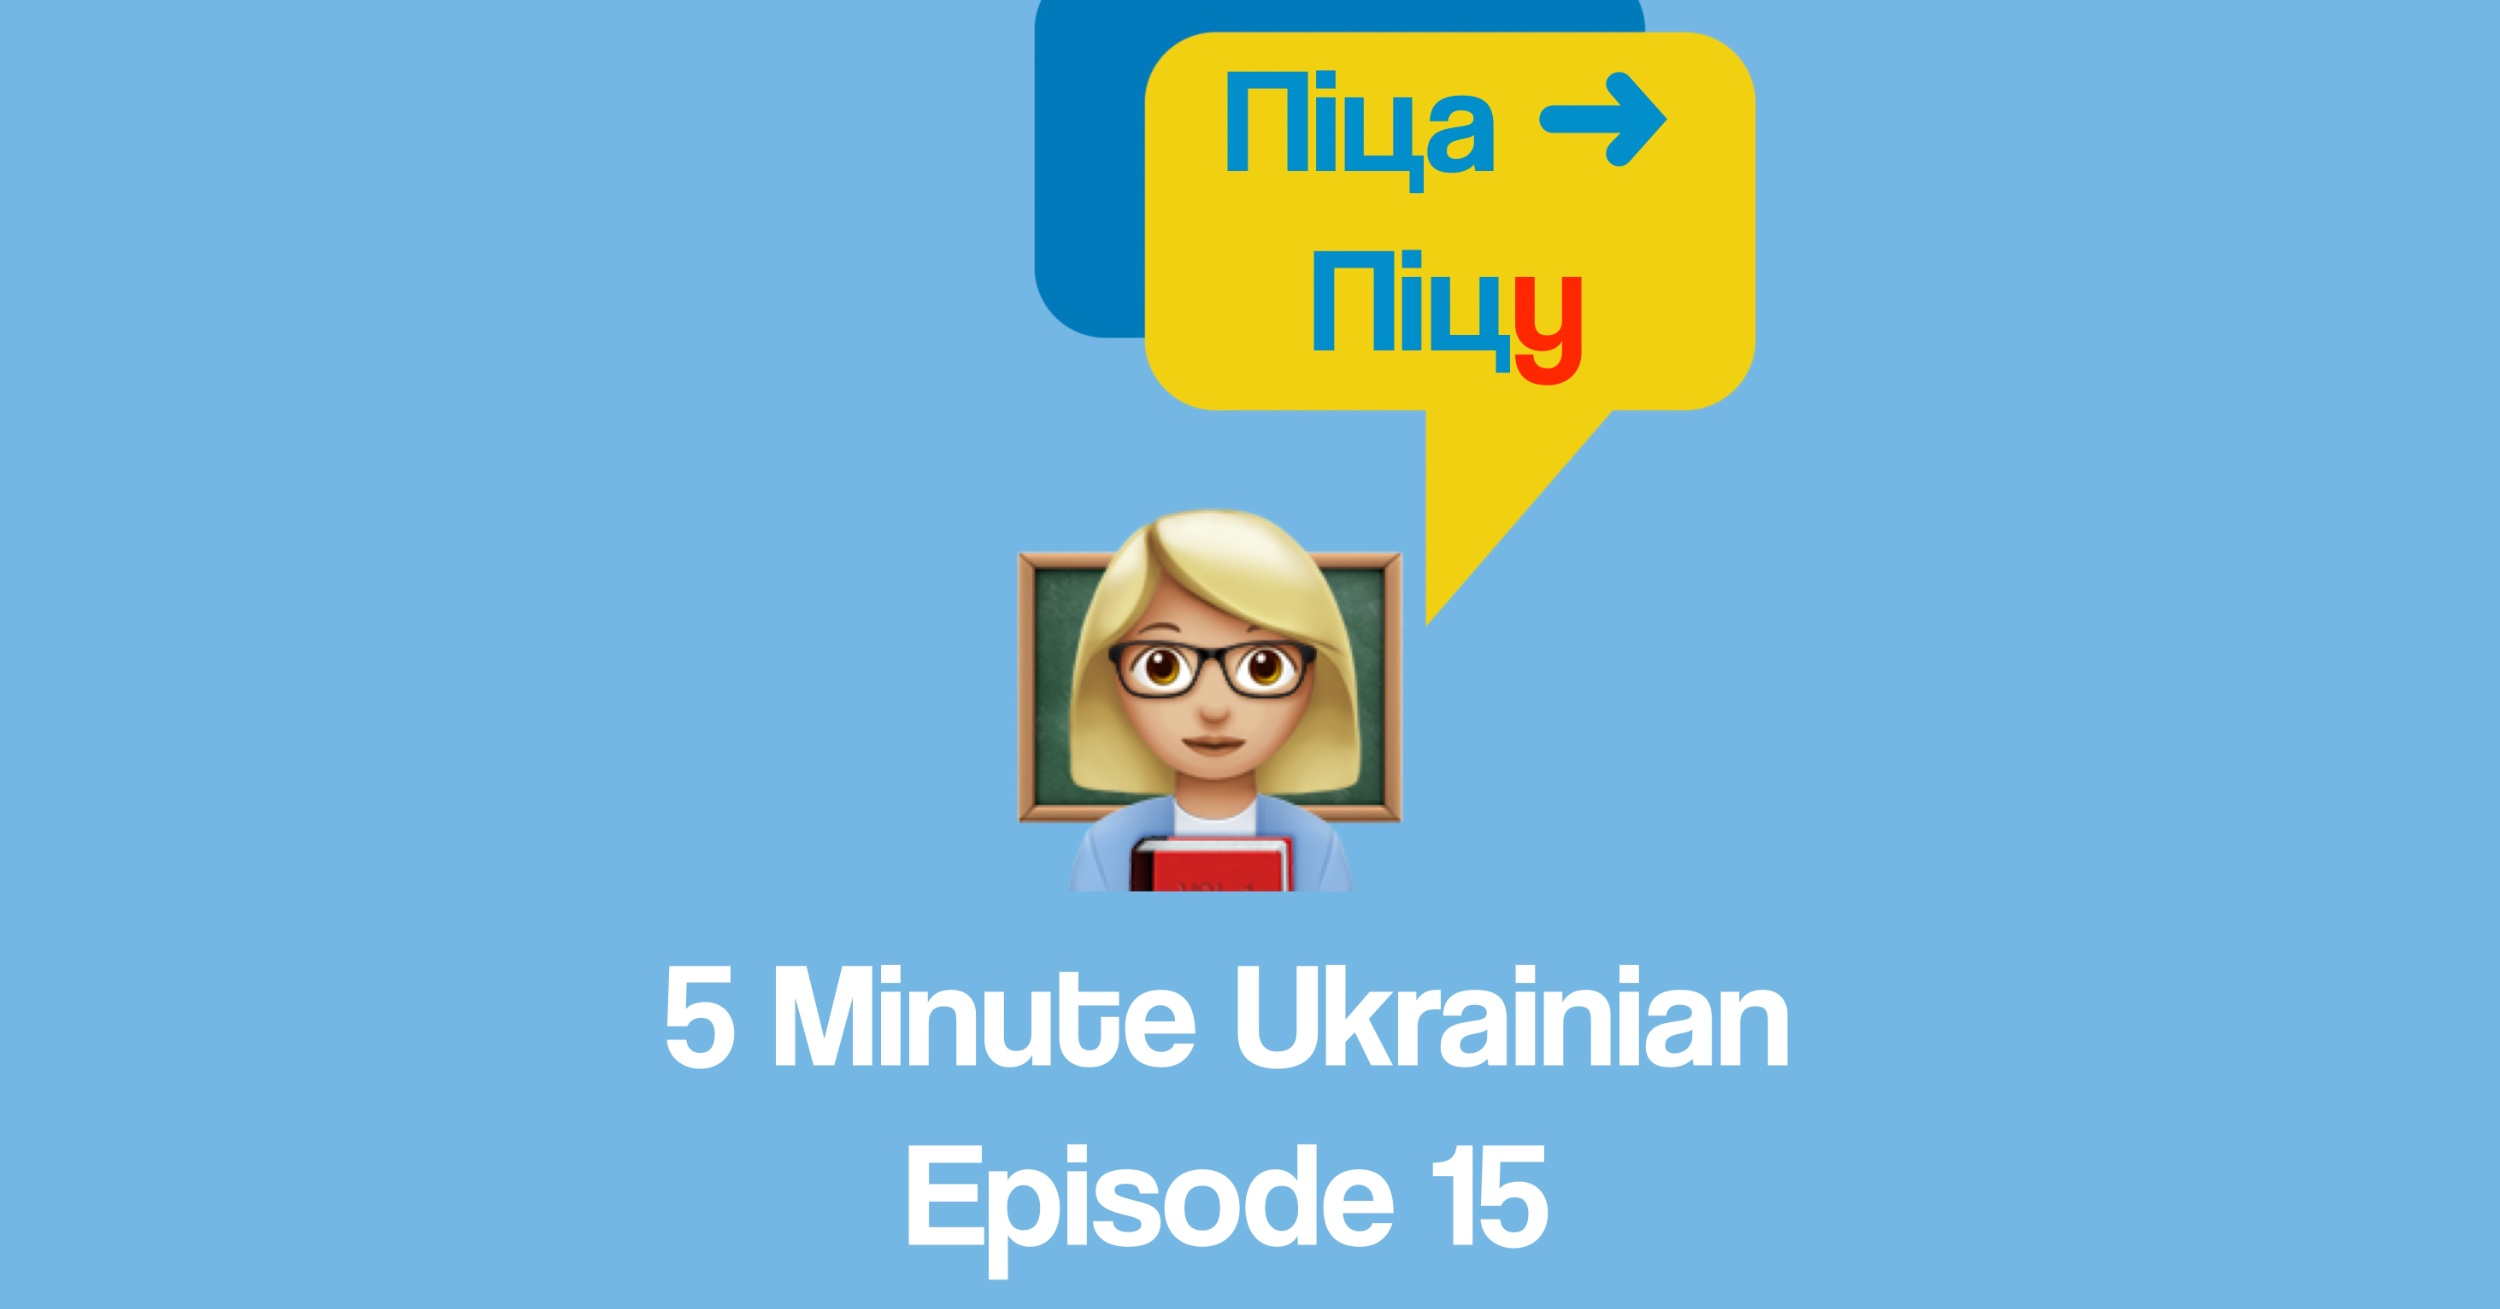 Accusative case / Direct object in Ukrainian